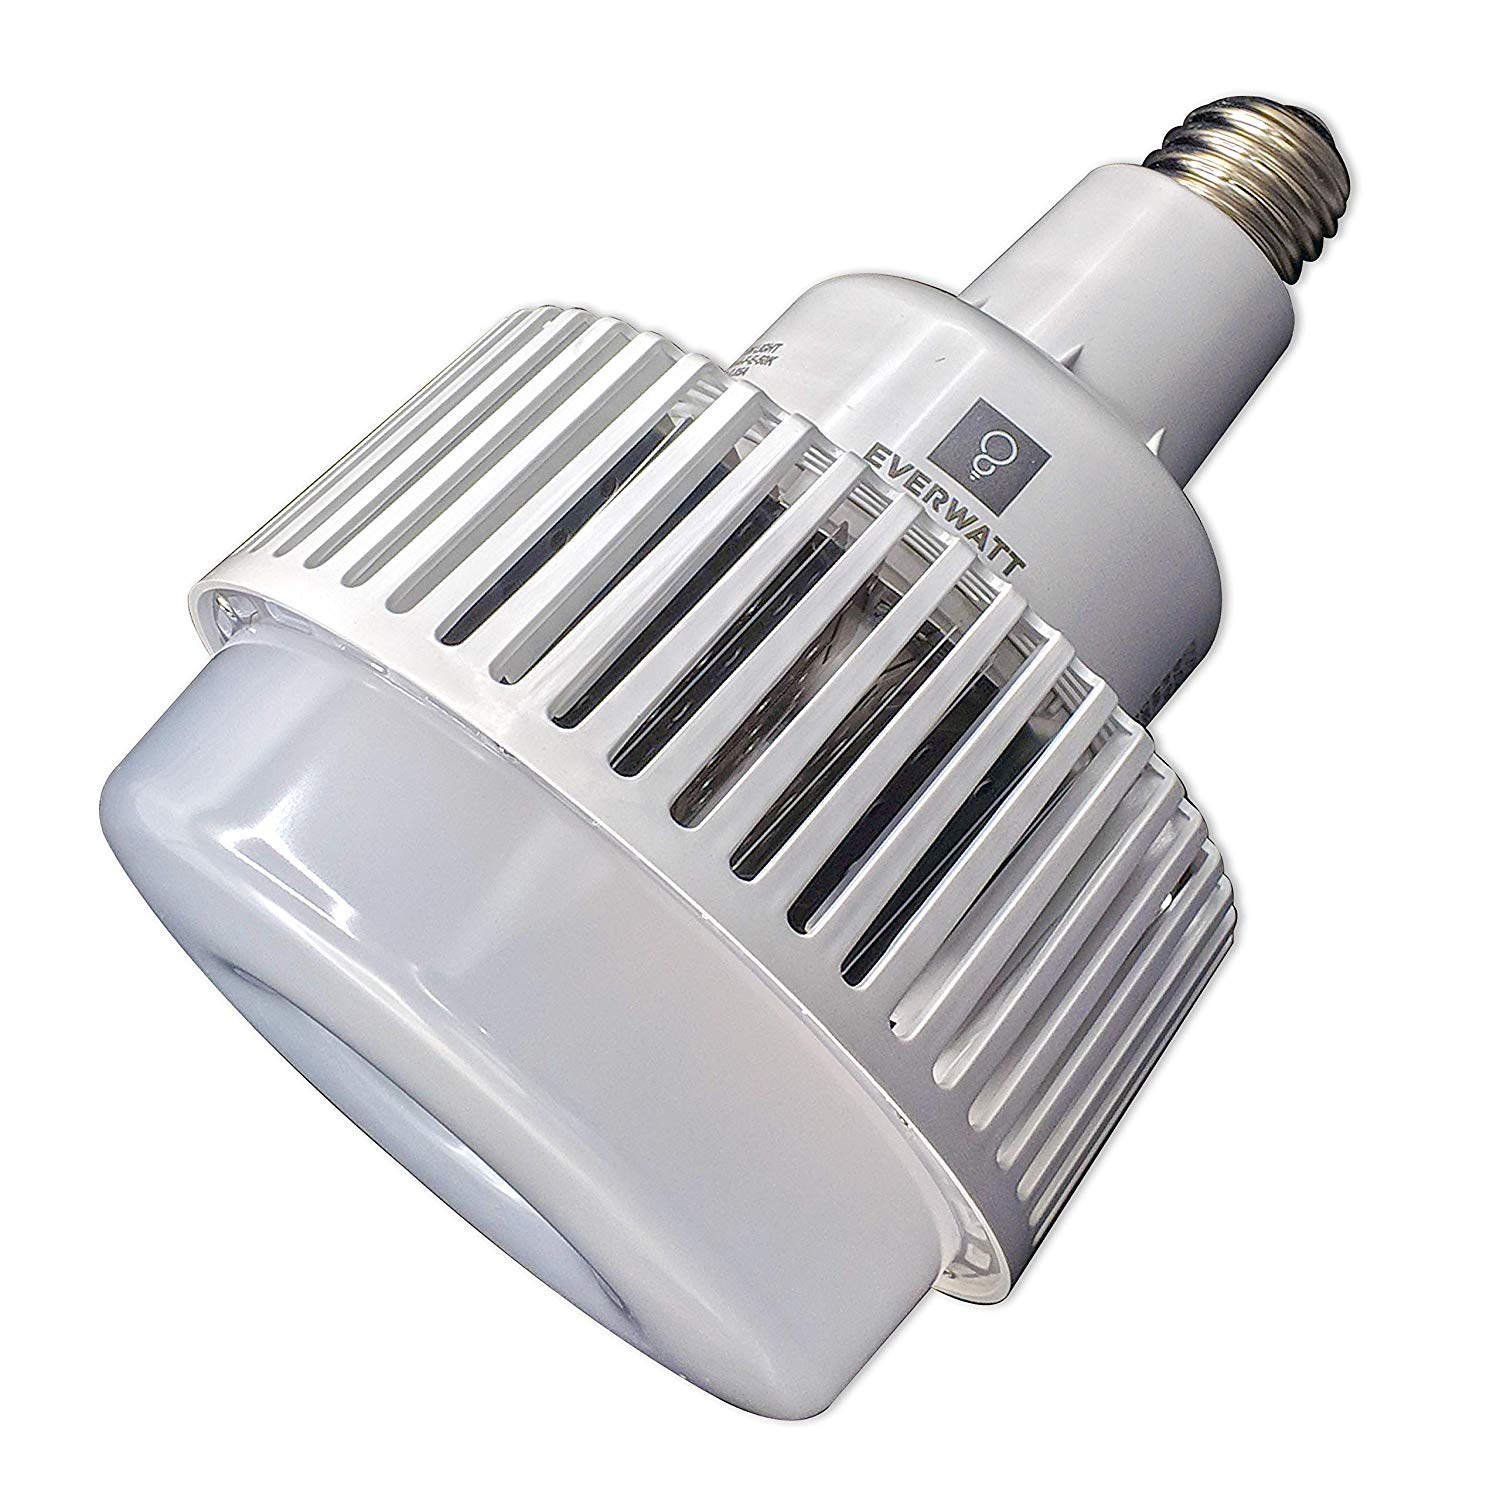 Metal Halide Lamp Led: 100W LED High Bay Bulb, E39 Mogul, Replacement For 400W